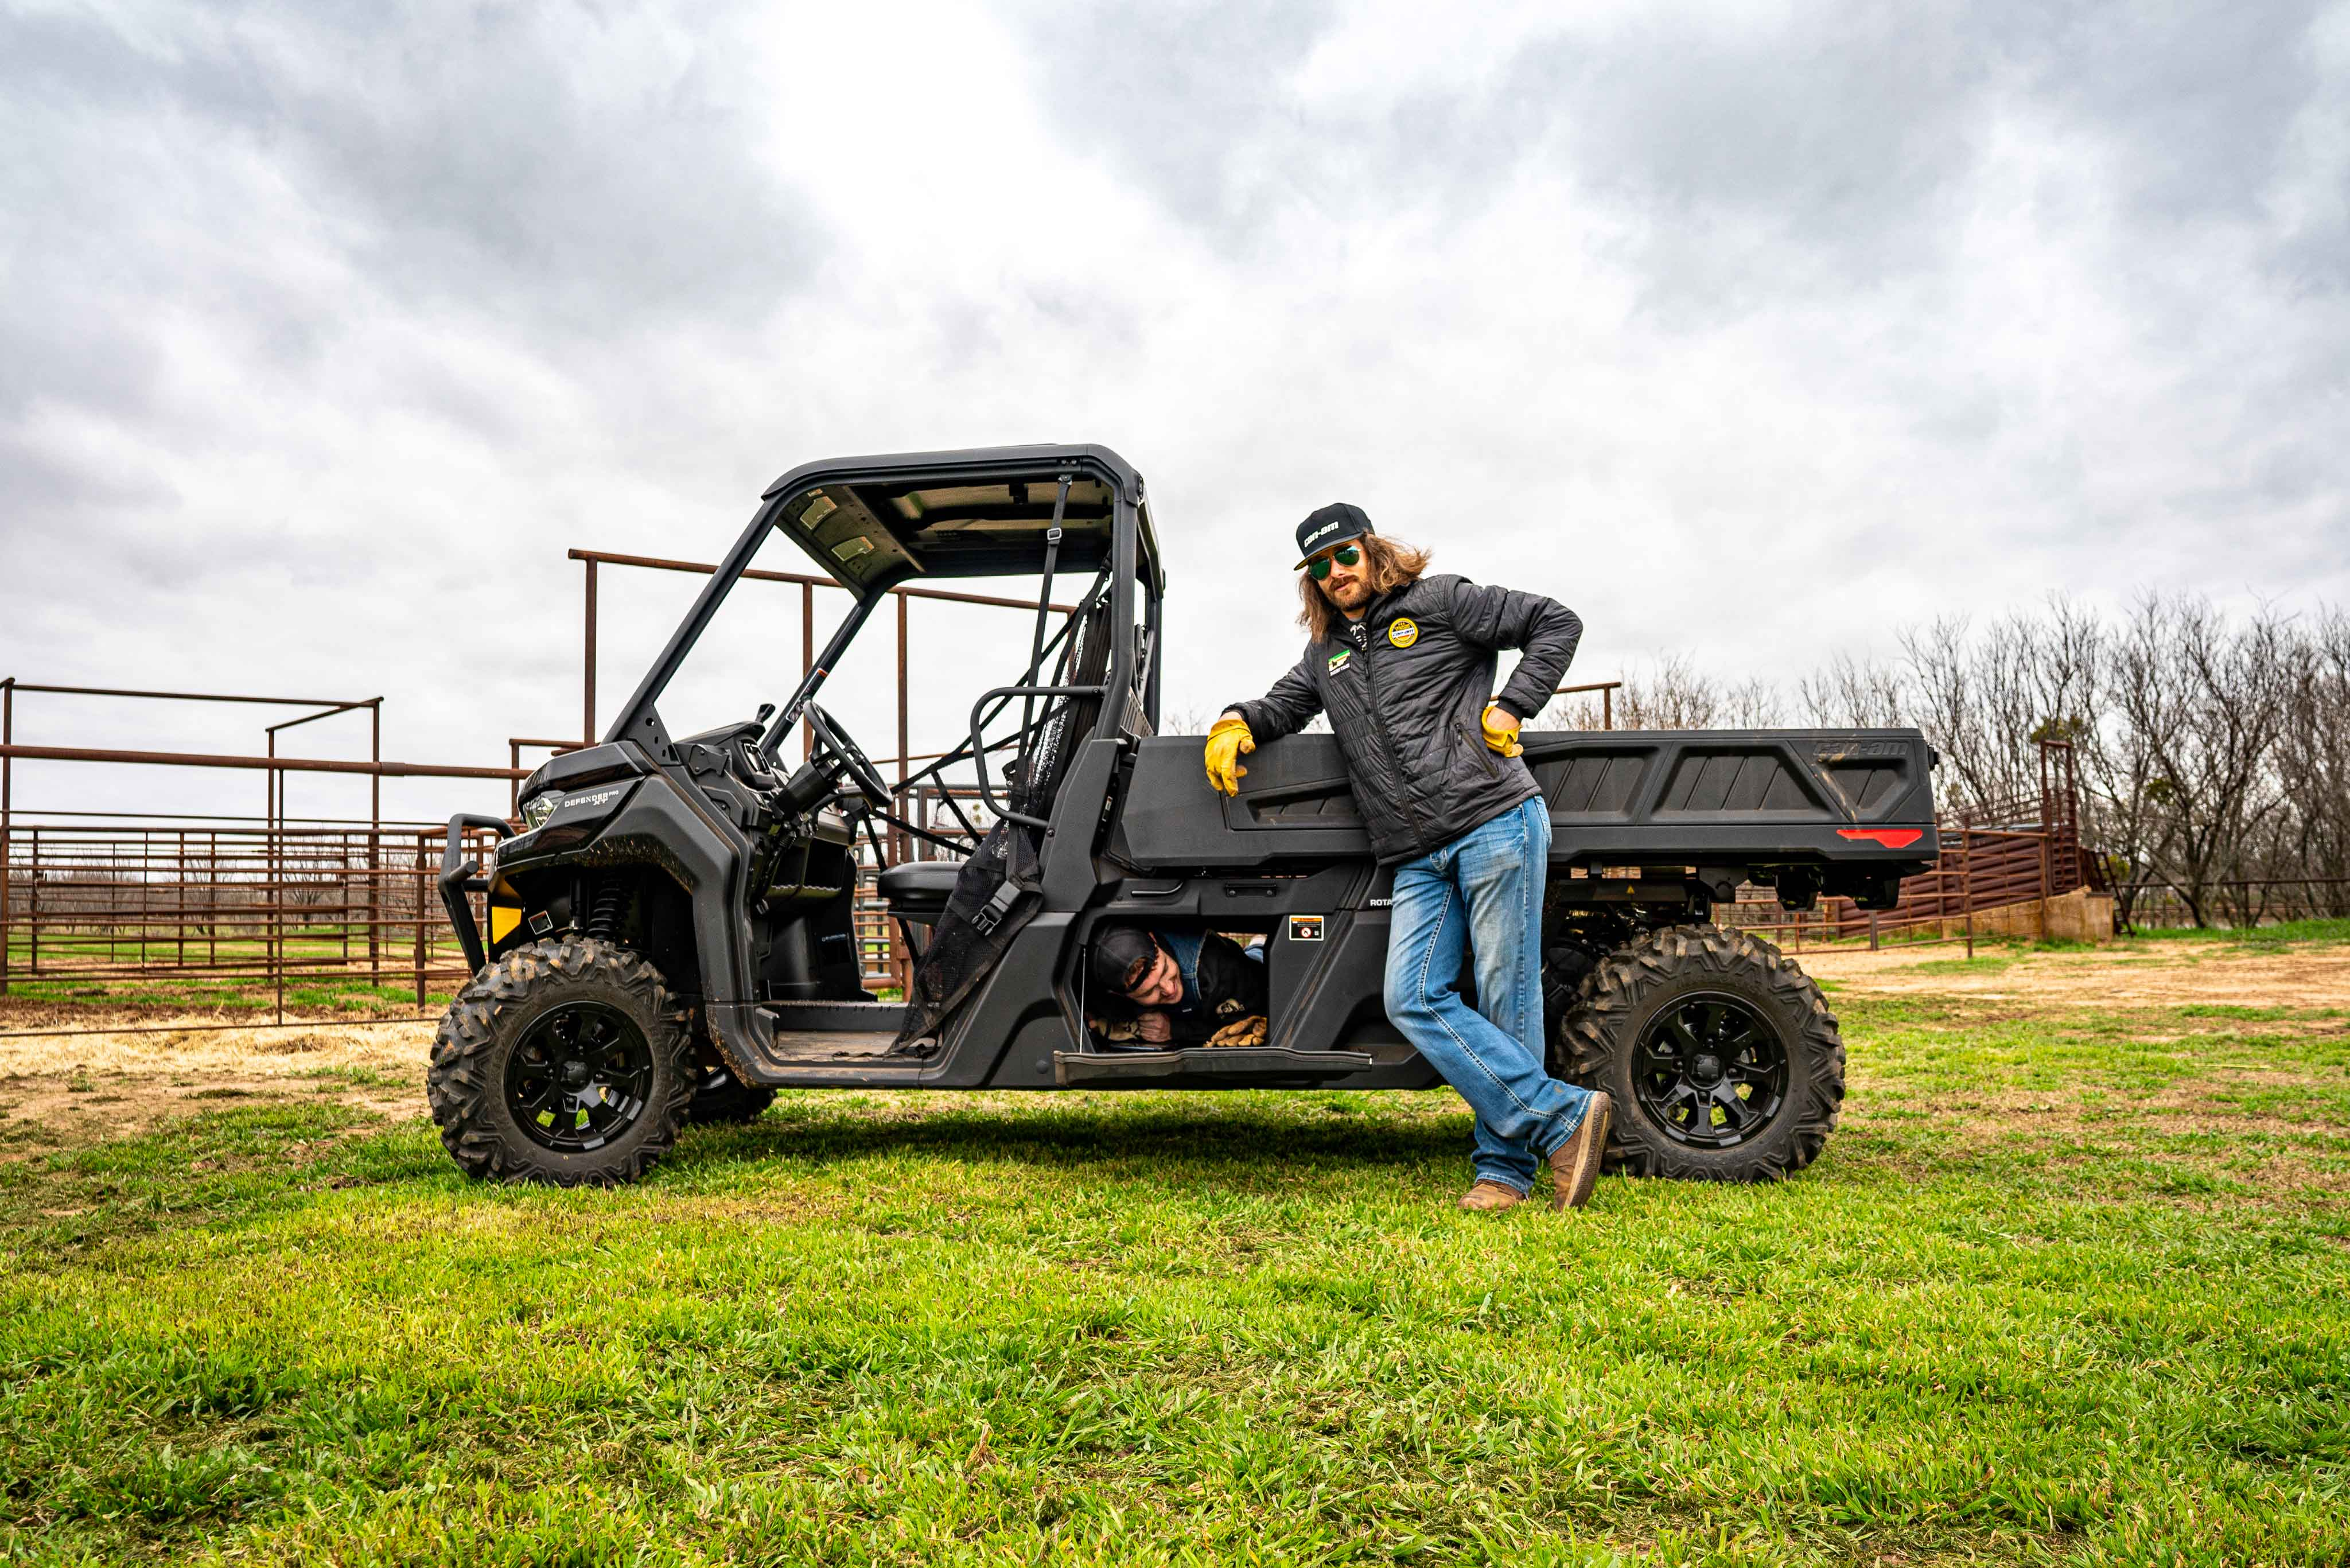 Can-Am Defender side-by-side vehicle ranching storage and under bed